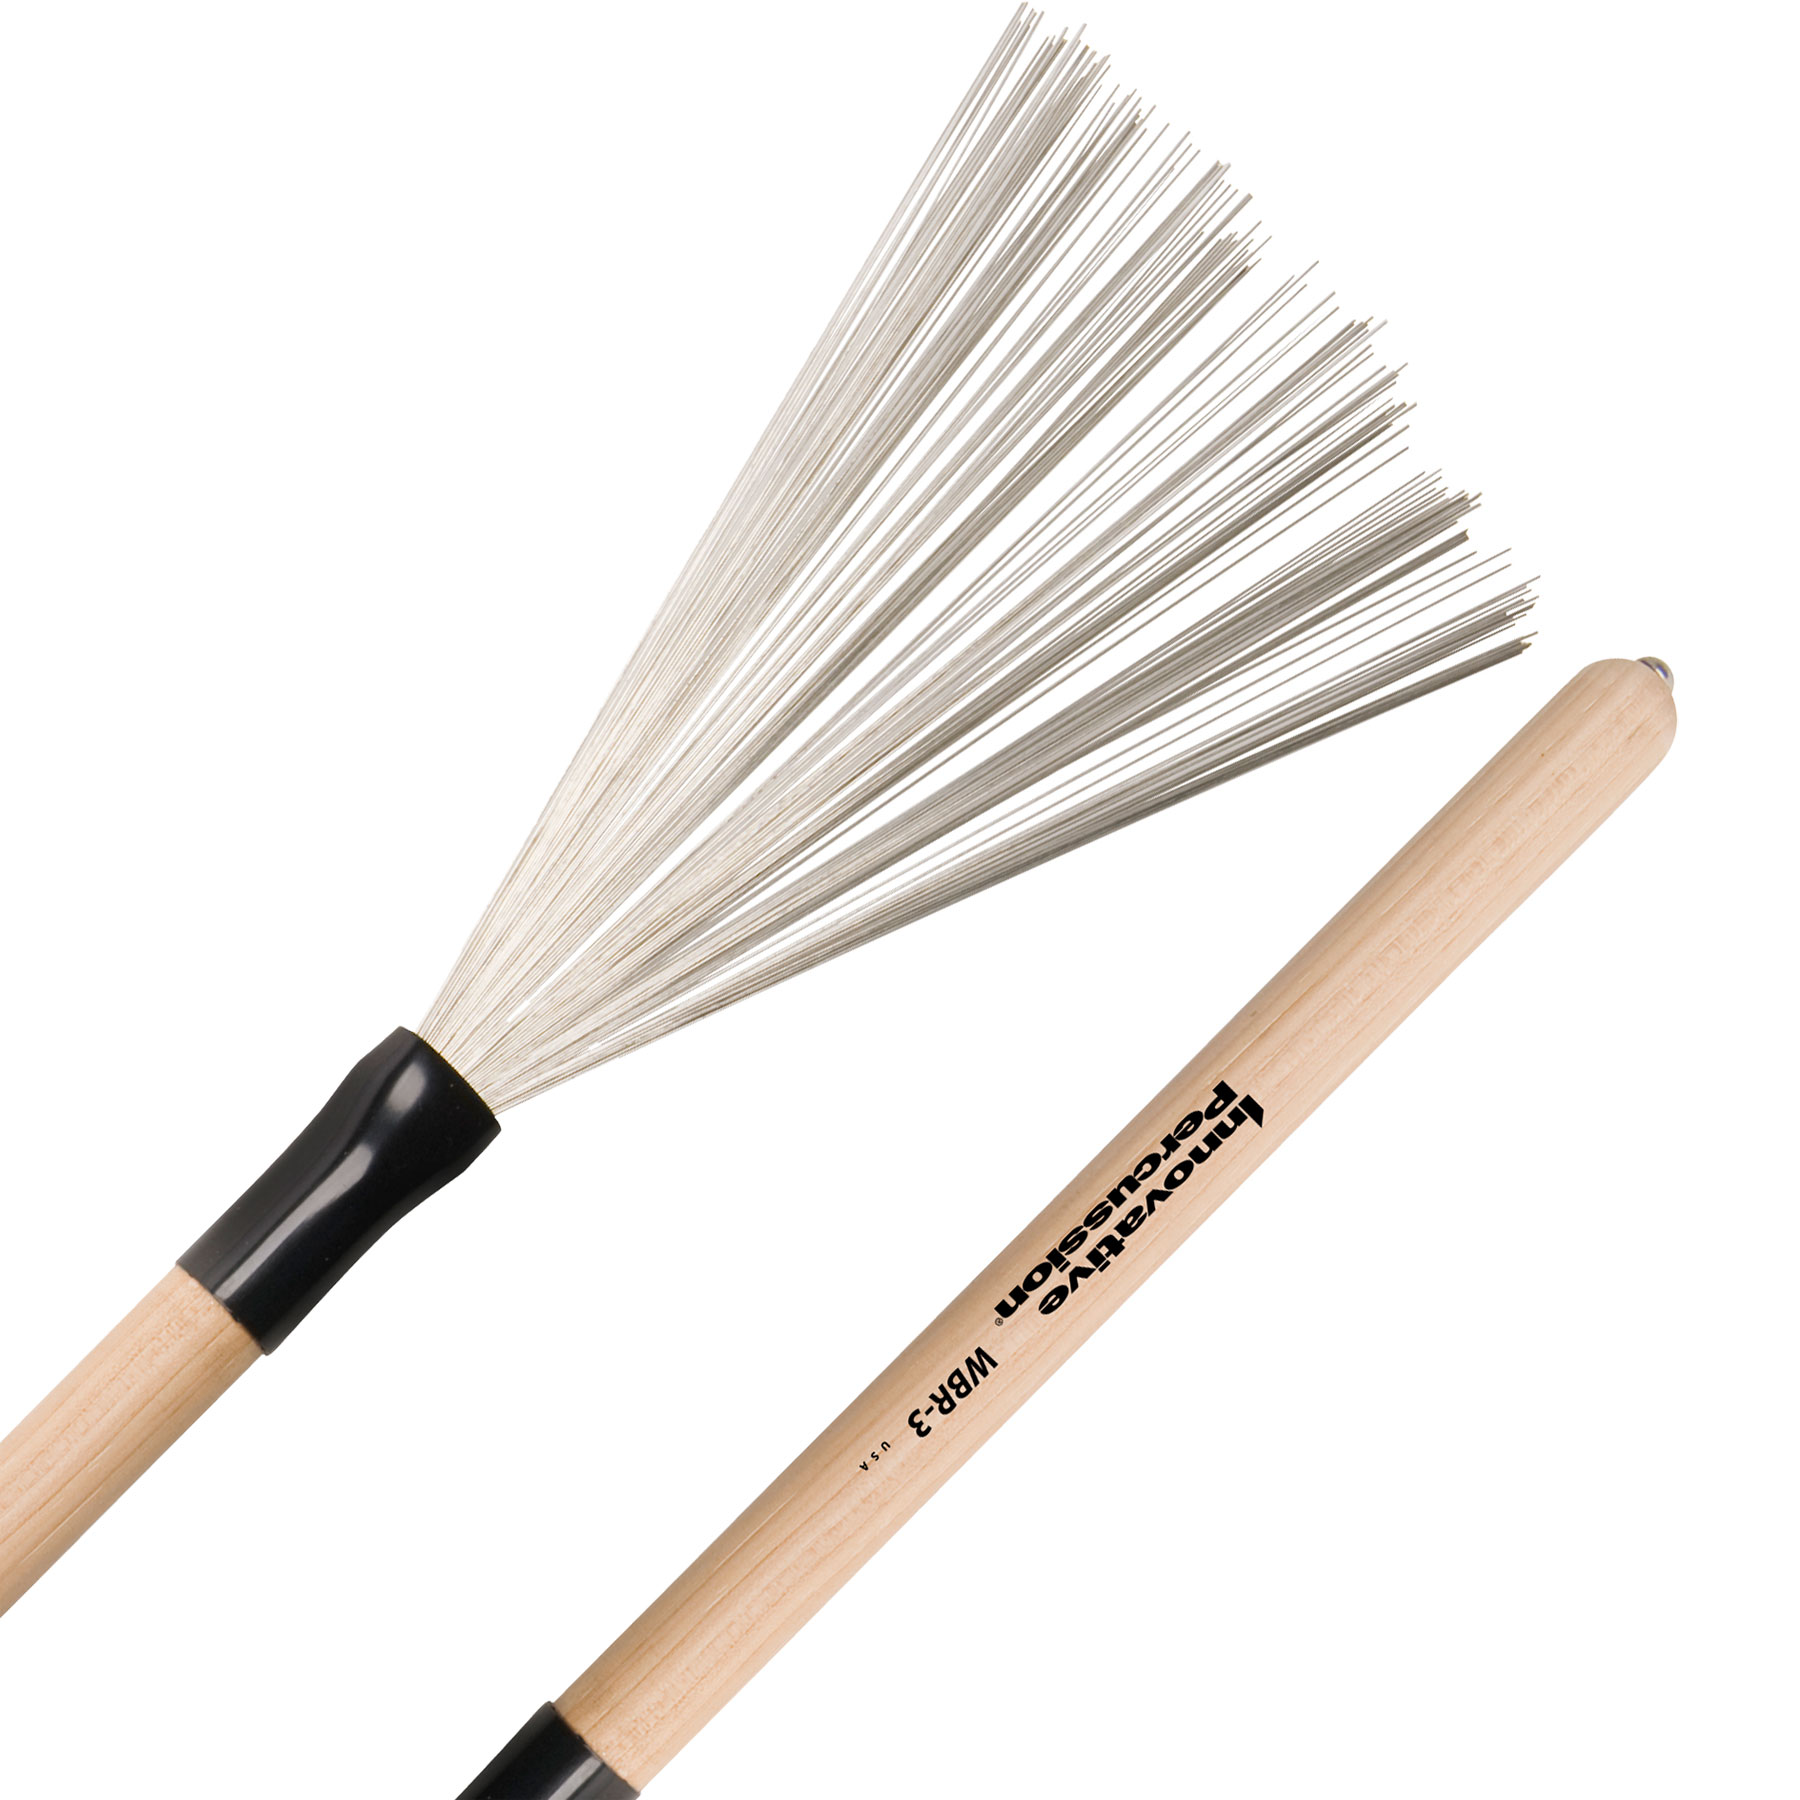 Innovative Percussion Medium Wire Brush with Fixed Wood Handle